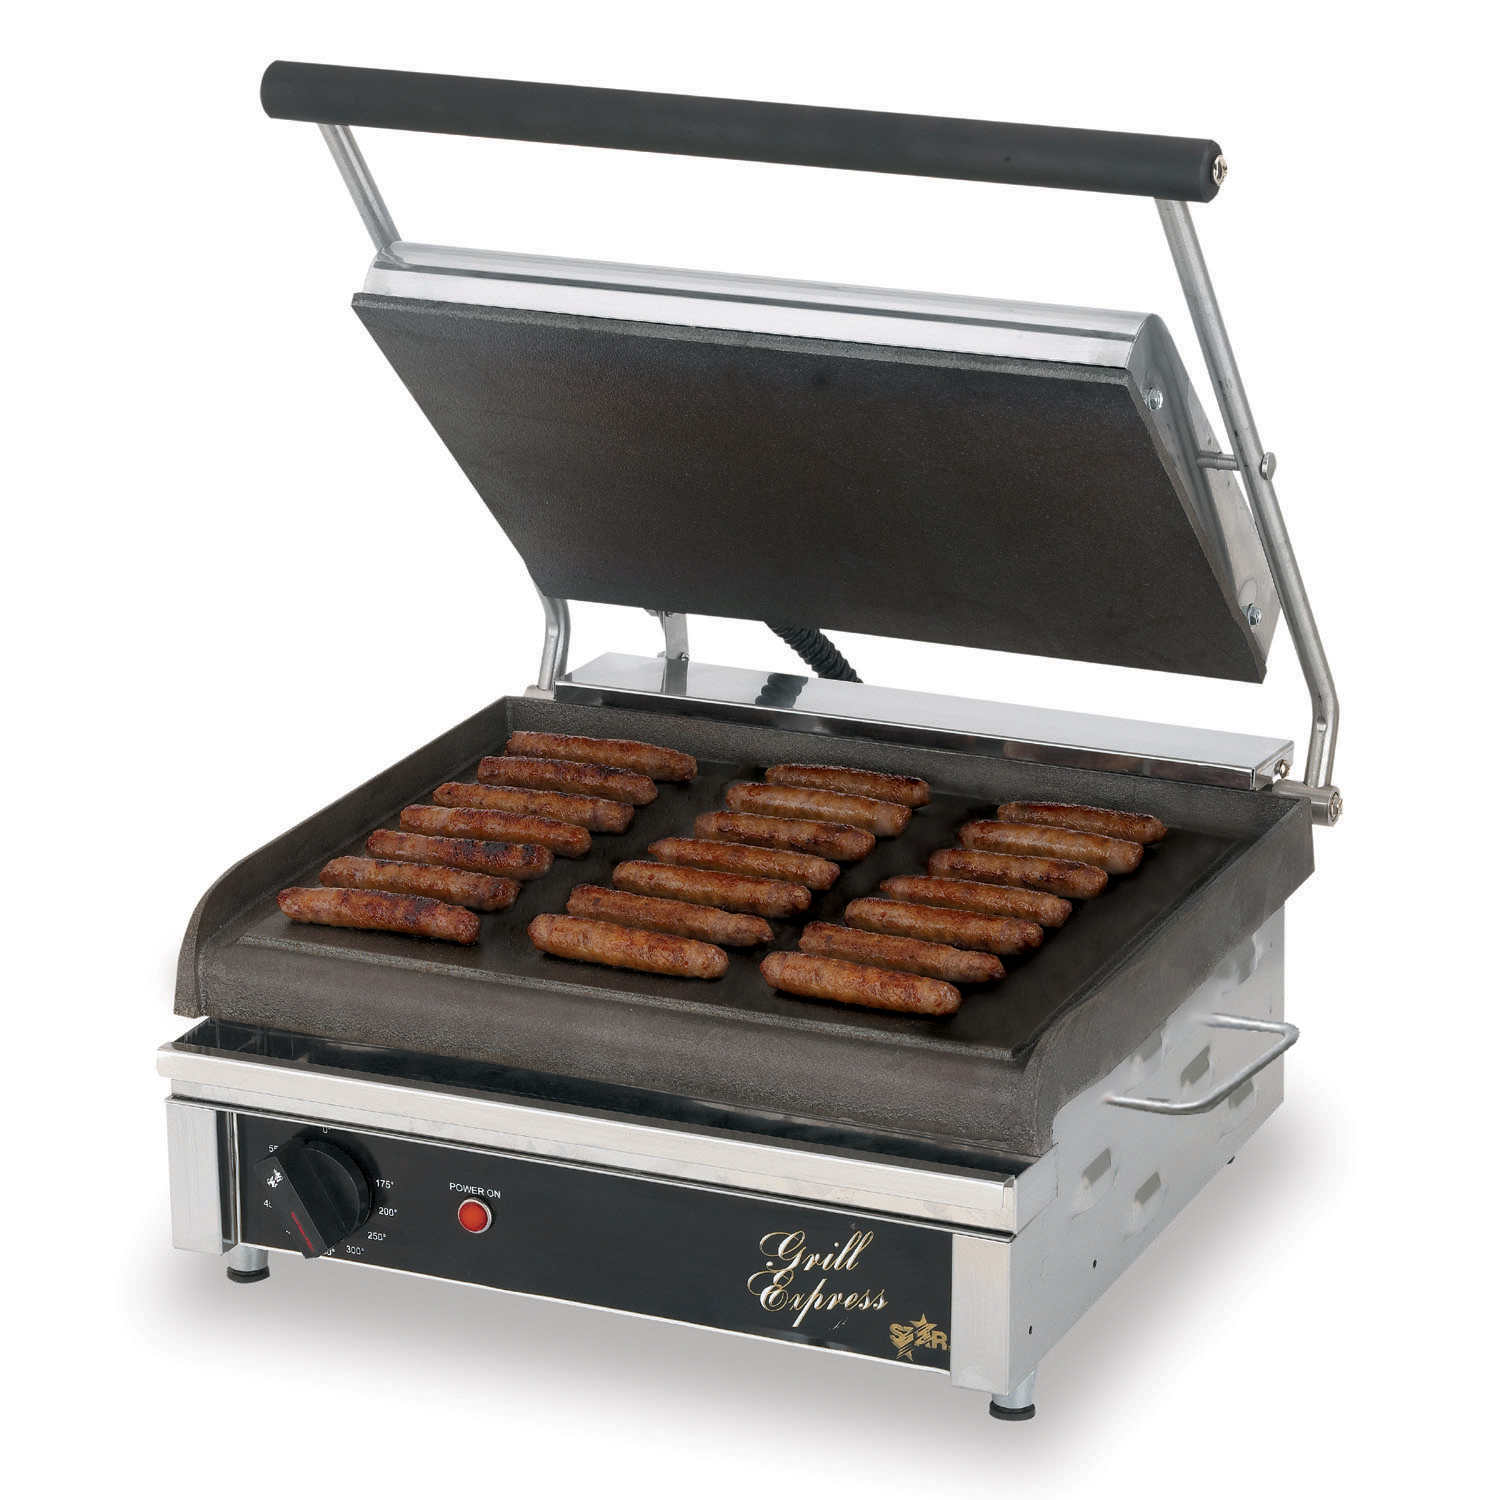 Star GX14IS sandwich / panini grill